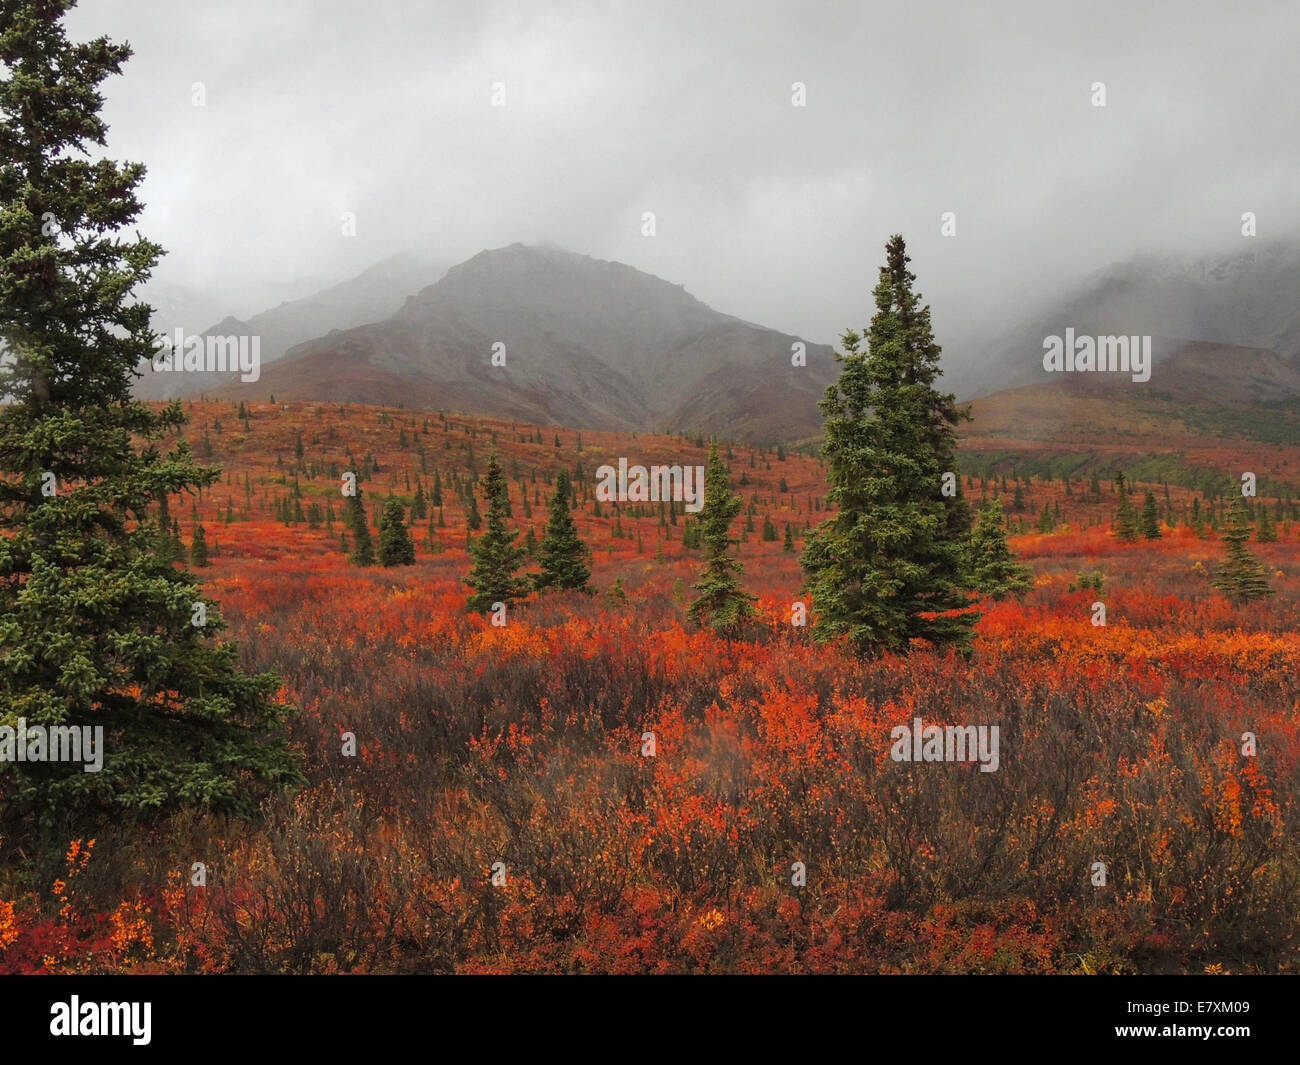 Black and White Spruce trees dot the firey tundra of dwarf birch, dwarf willow, blueberry and other subarctic plants. - Stock Image